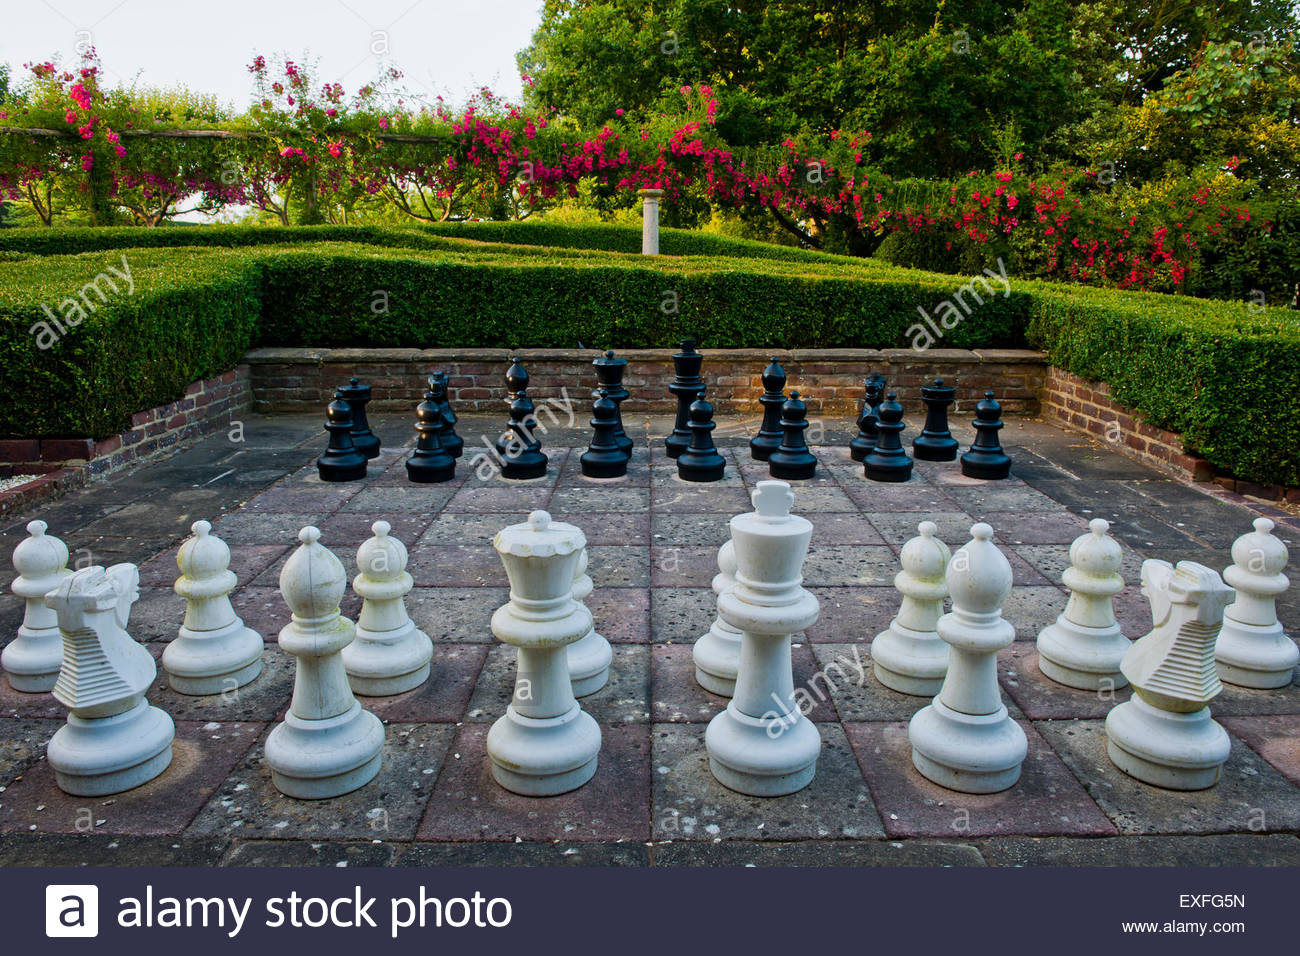 garden chess set game - Stock Image